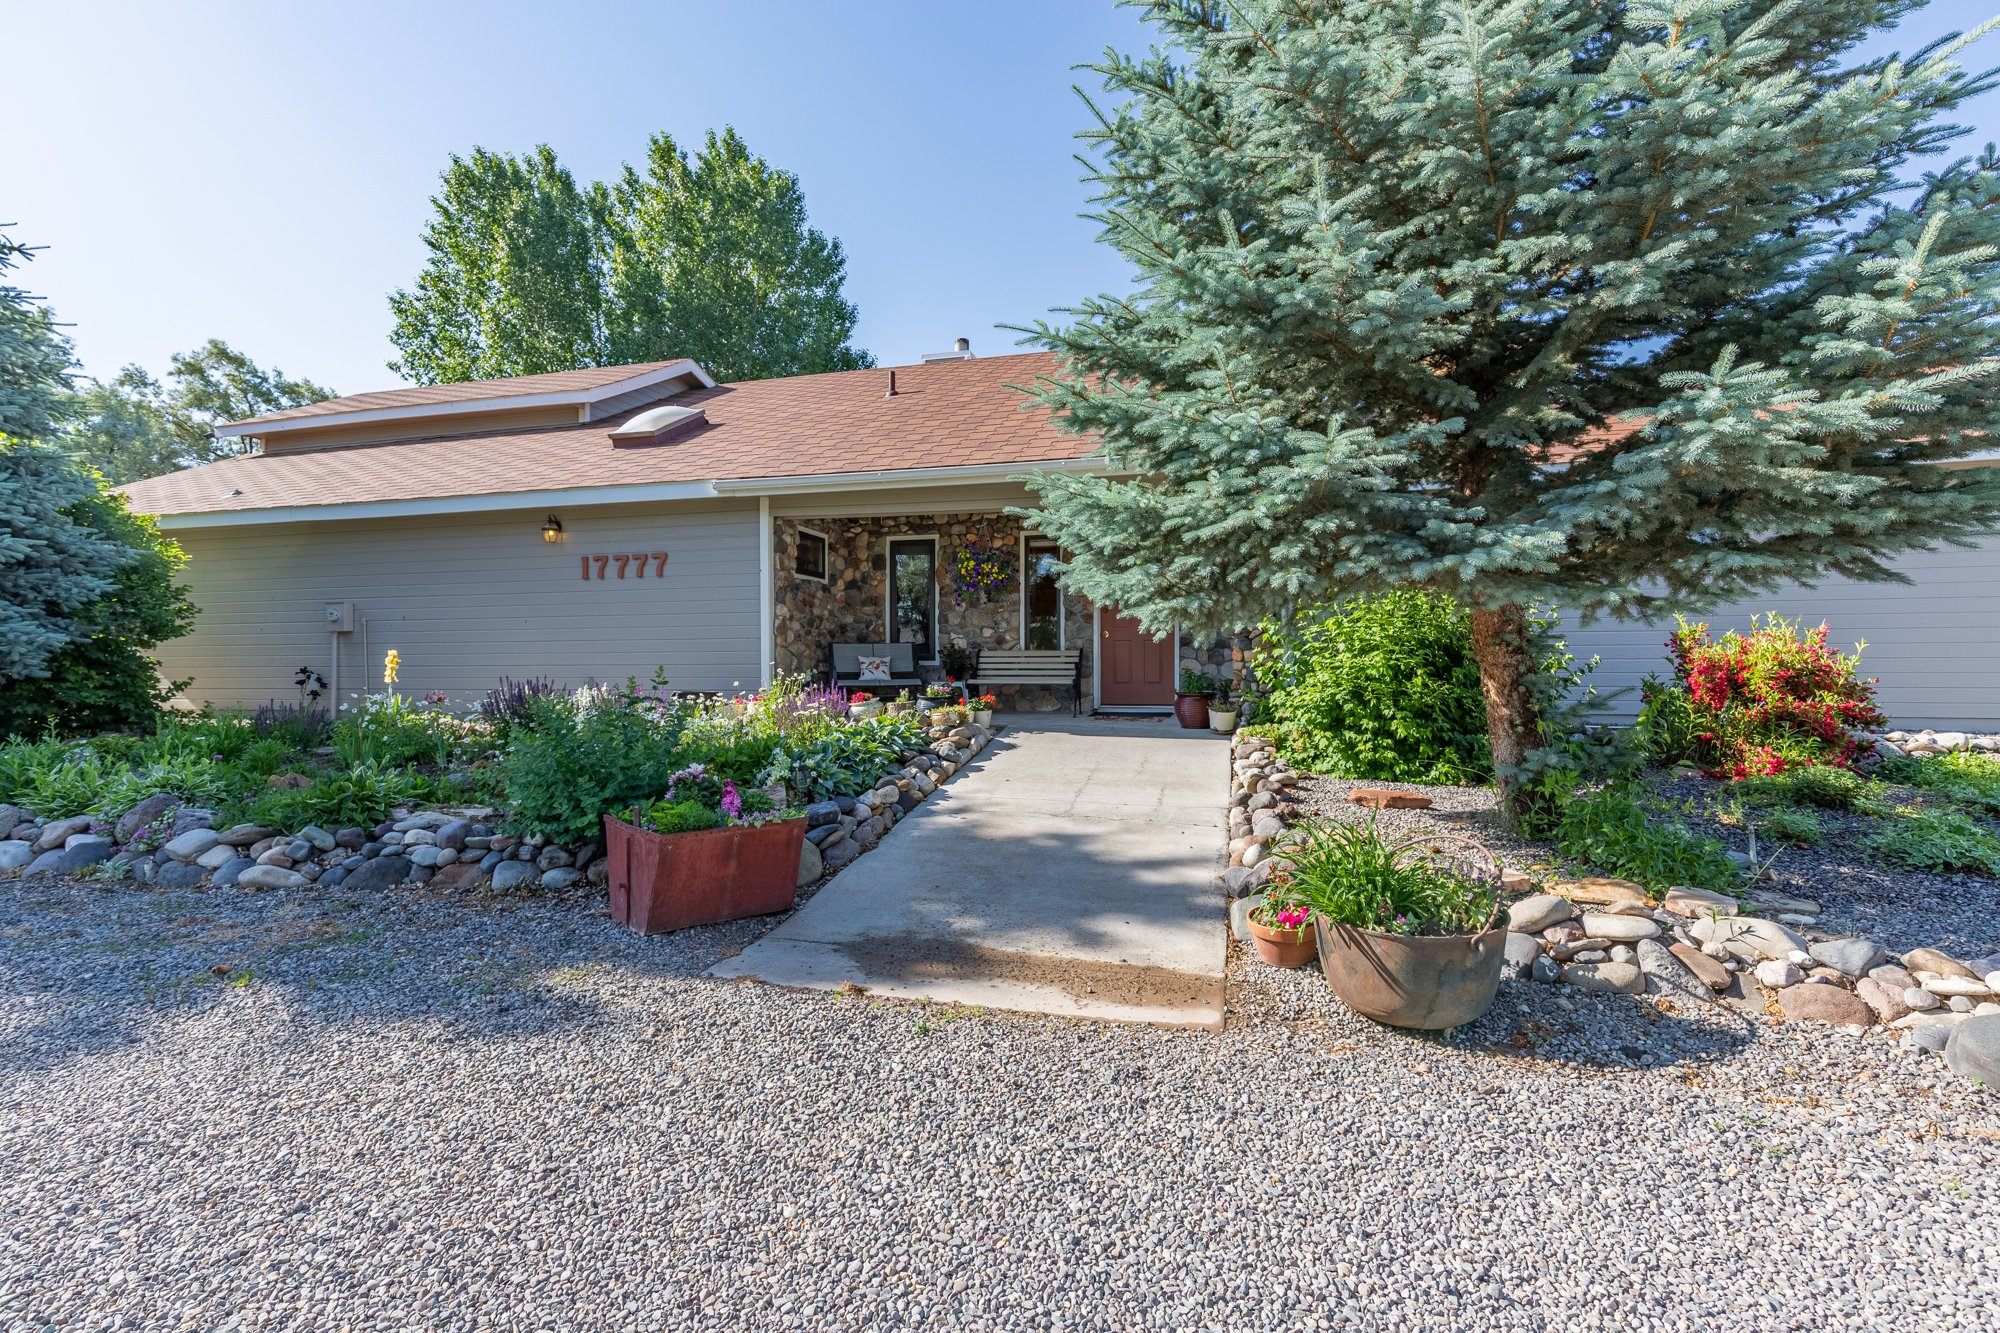 Landscaped Front Entrance - 17777 6650 Rd Montrose, CO 81403 - Atha Team Country Real Estate